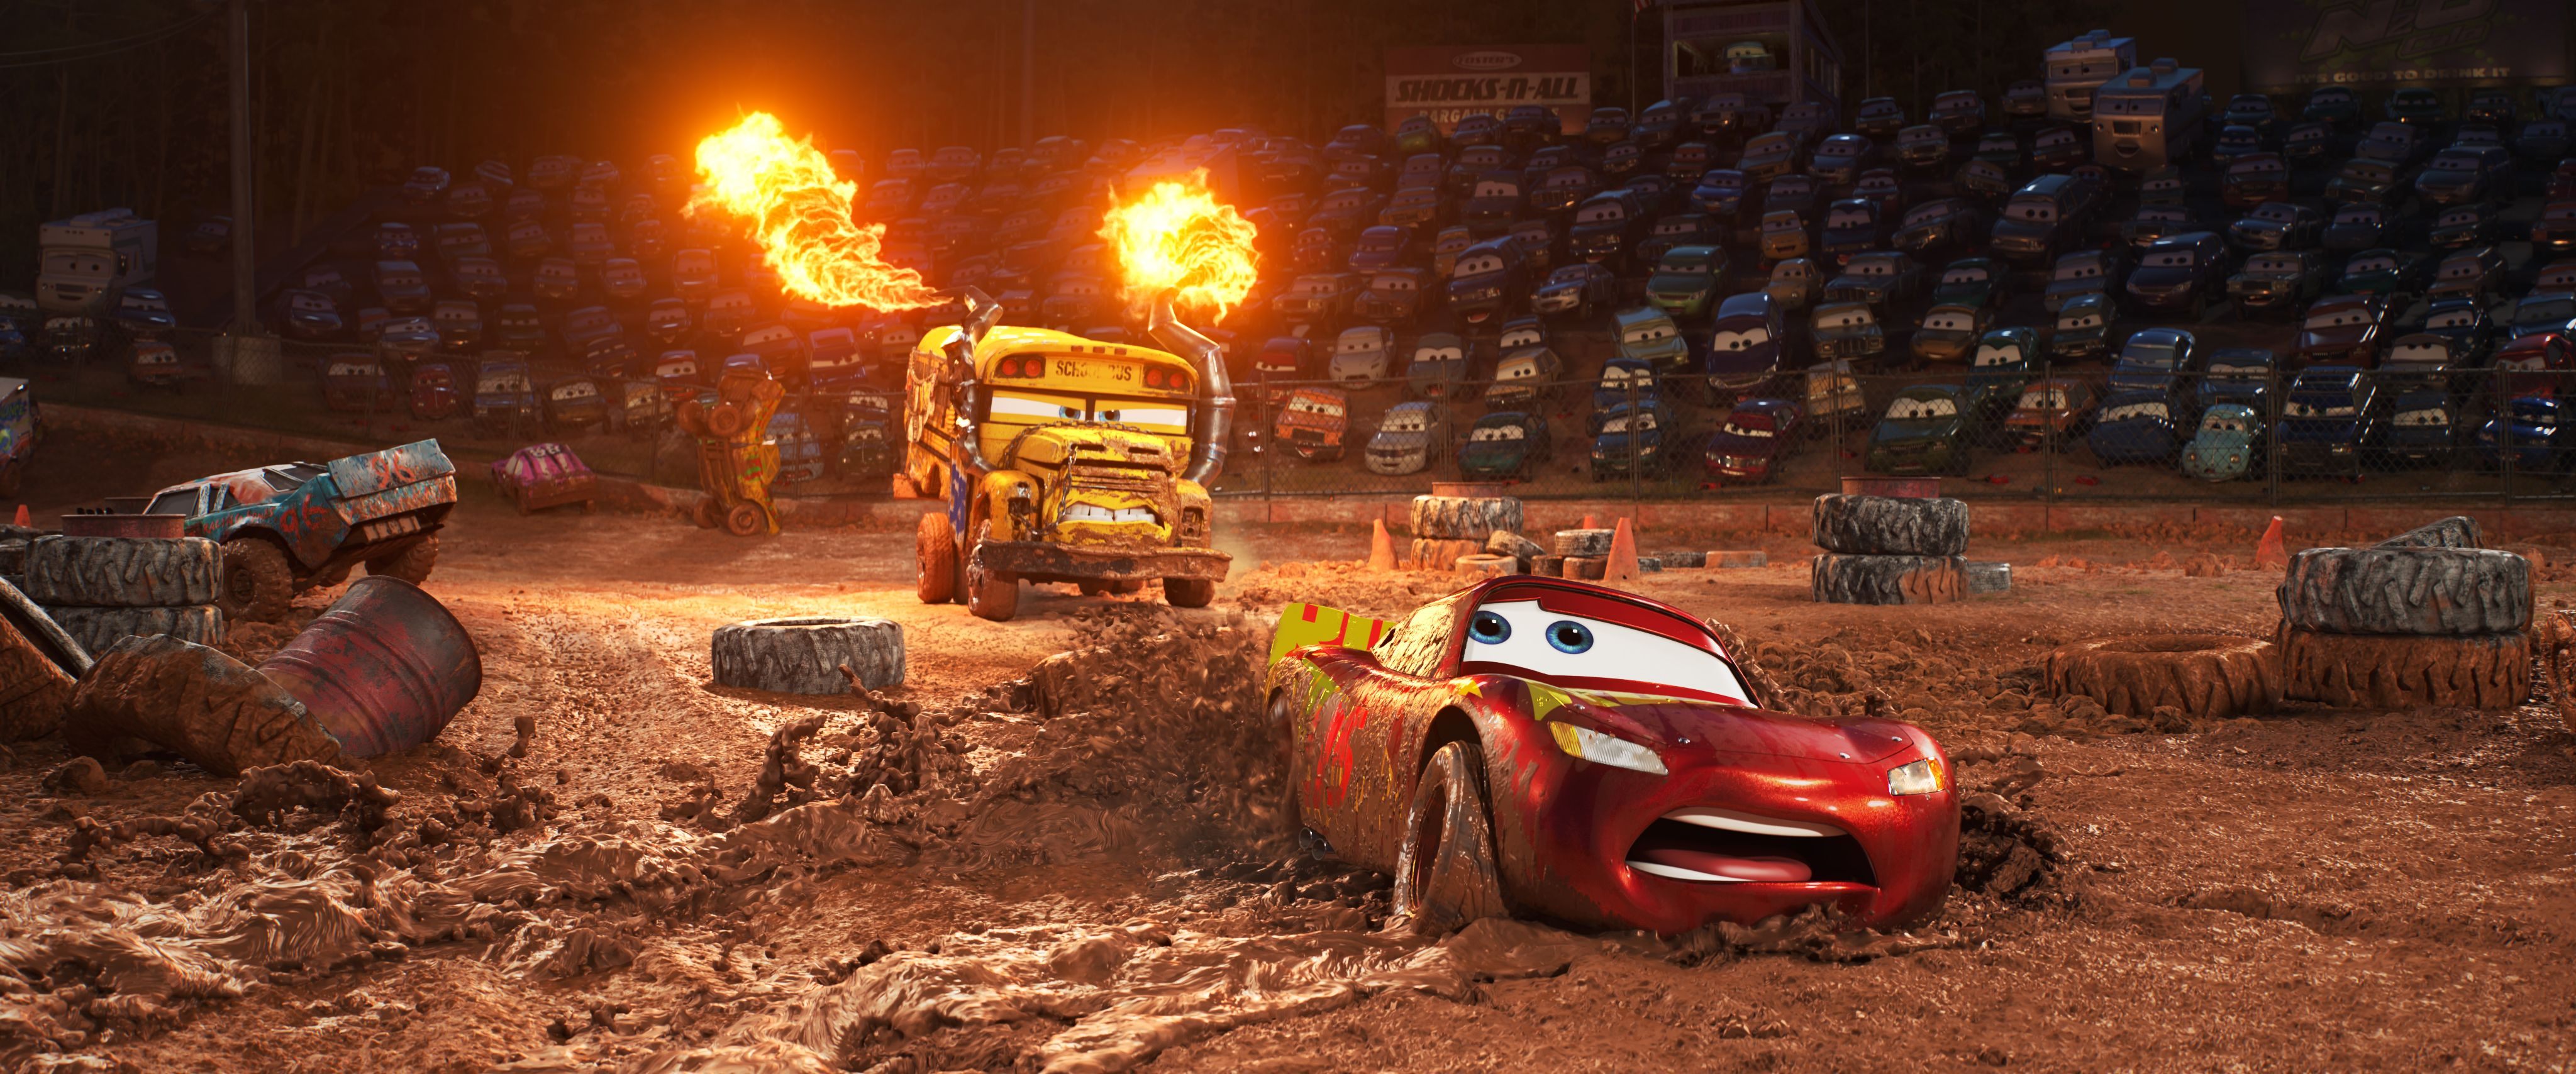 Cars 3 Trivia: Things to Know about Pixar's Latest Movie | Collider